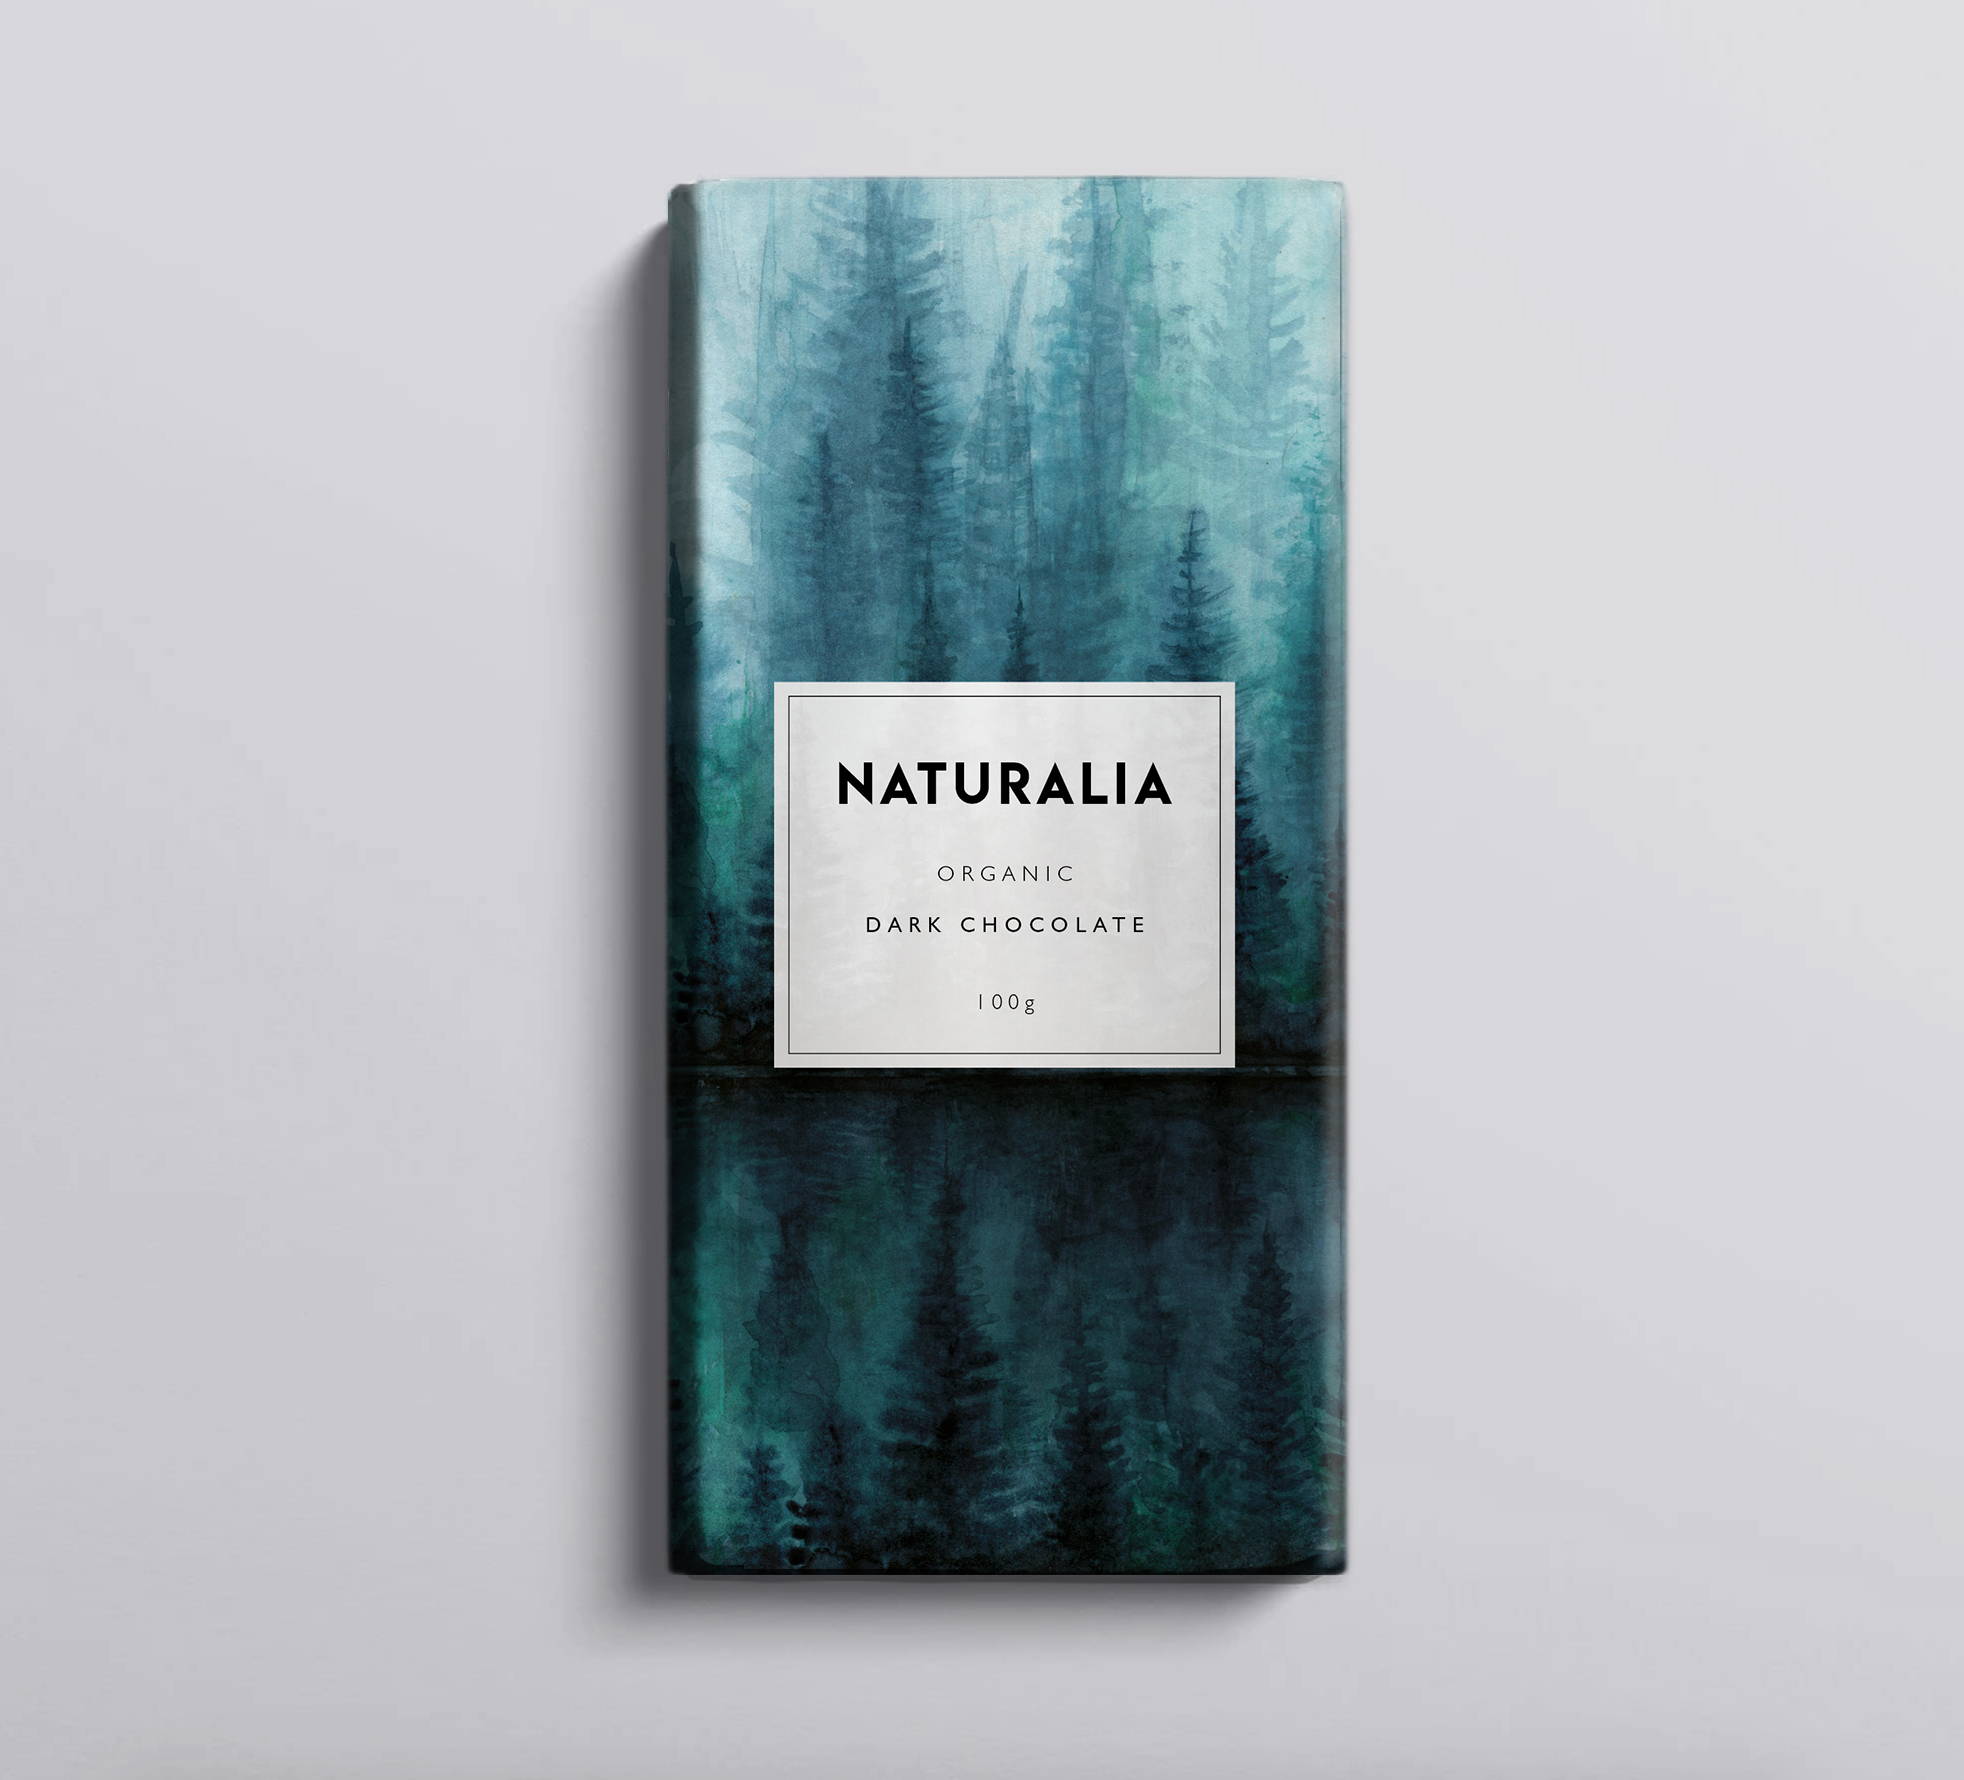 Naturalia-dark-chocolate